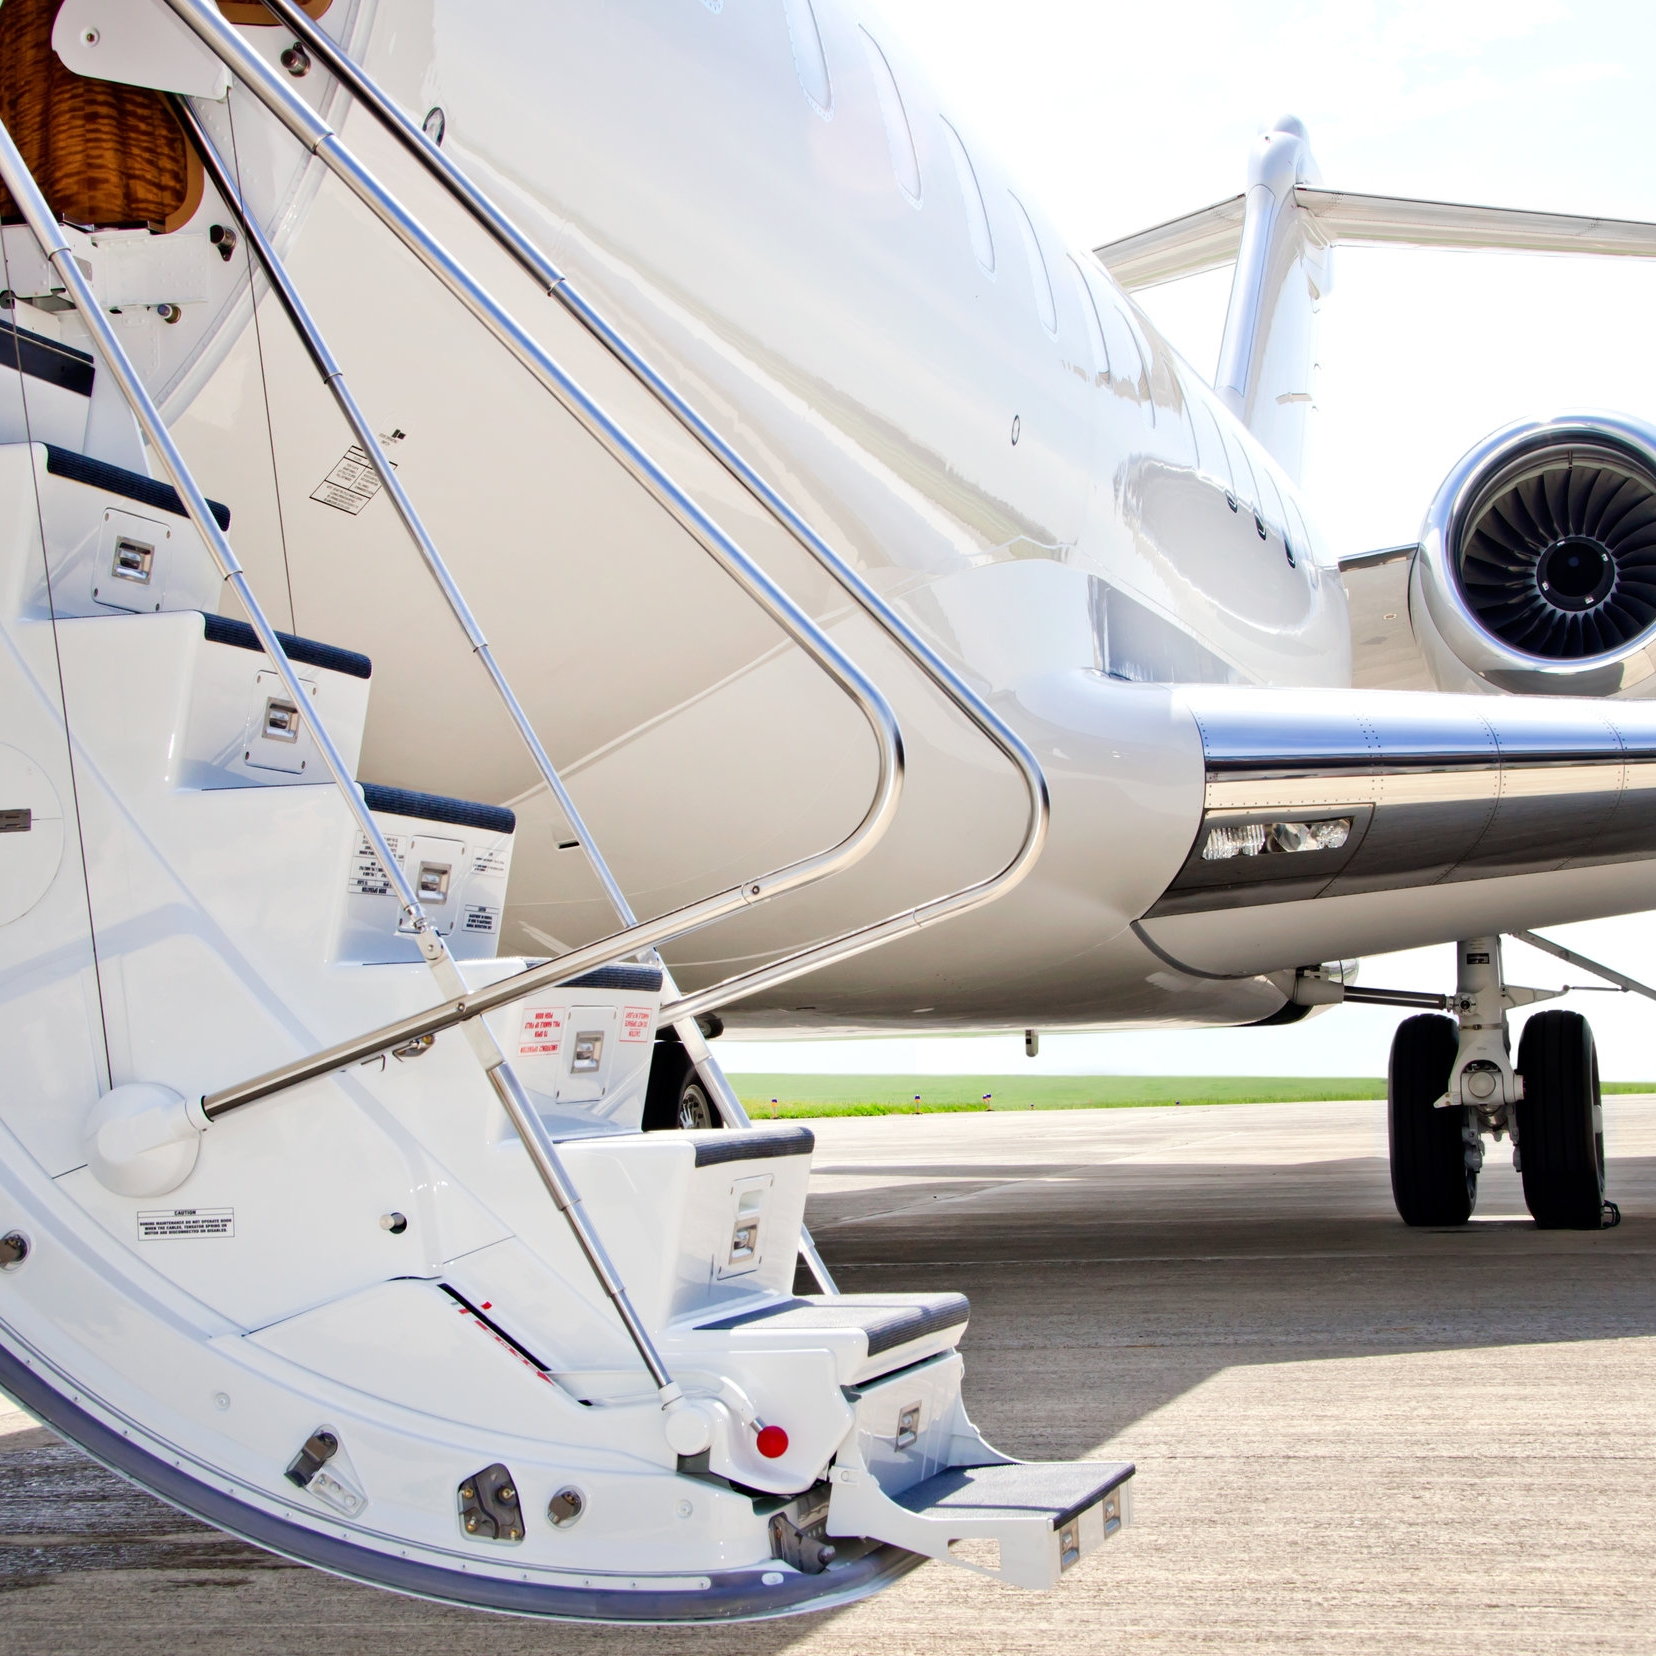 Operational Services by Aeromanagement Group